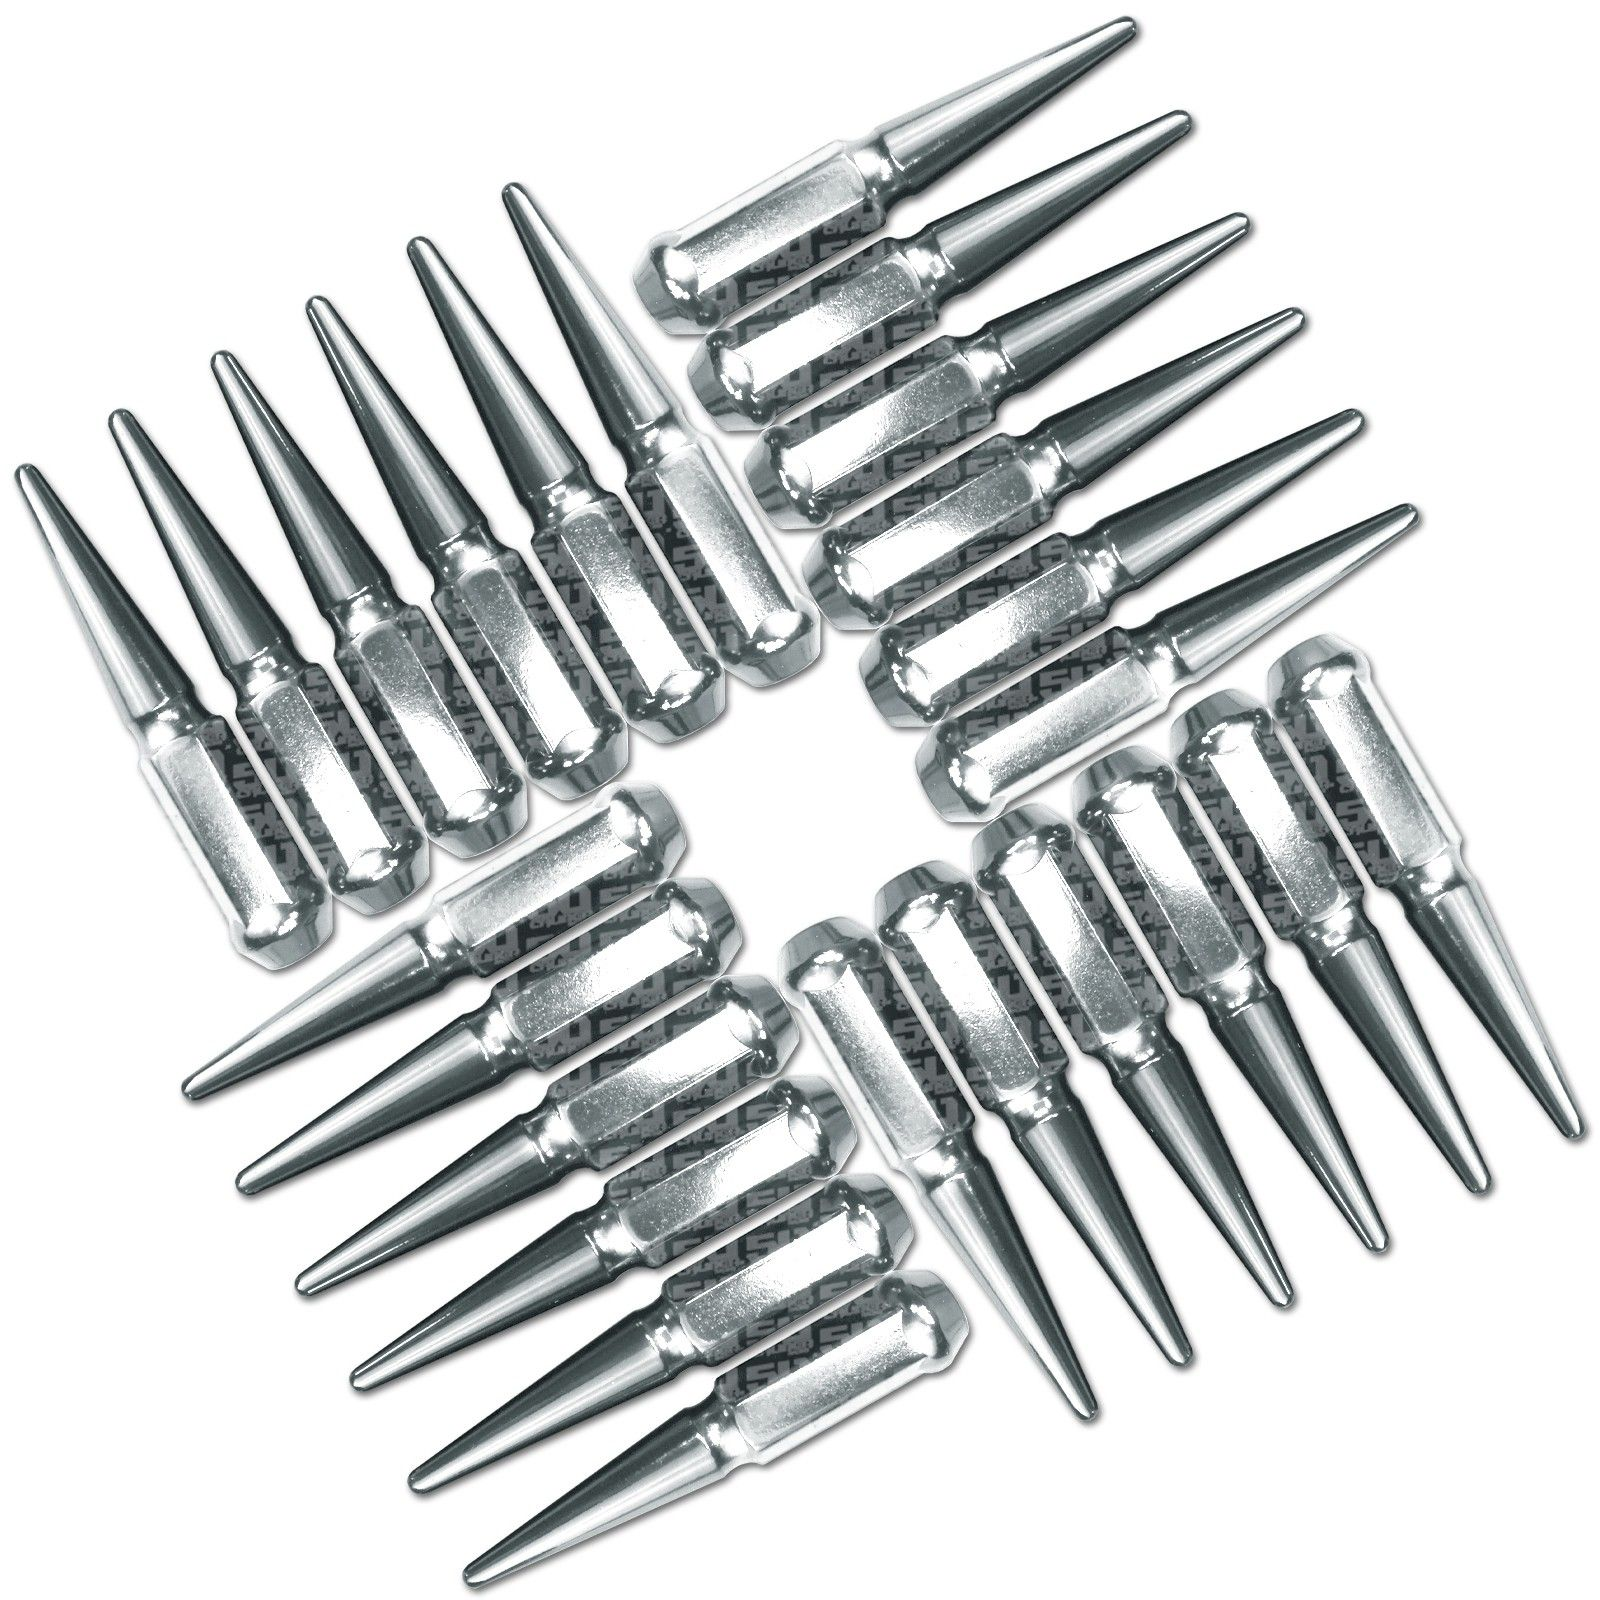 9 16 18 Extended Spike Lug Nuts Conical Acorn Taper Seat